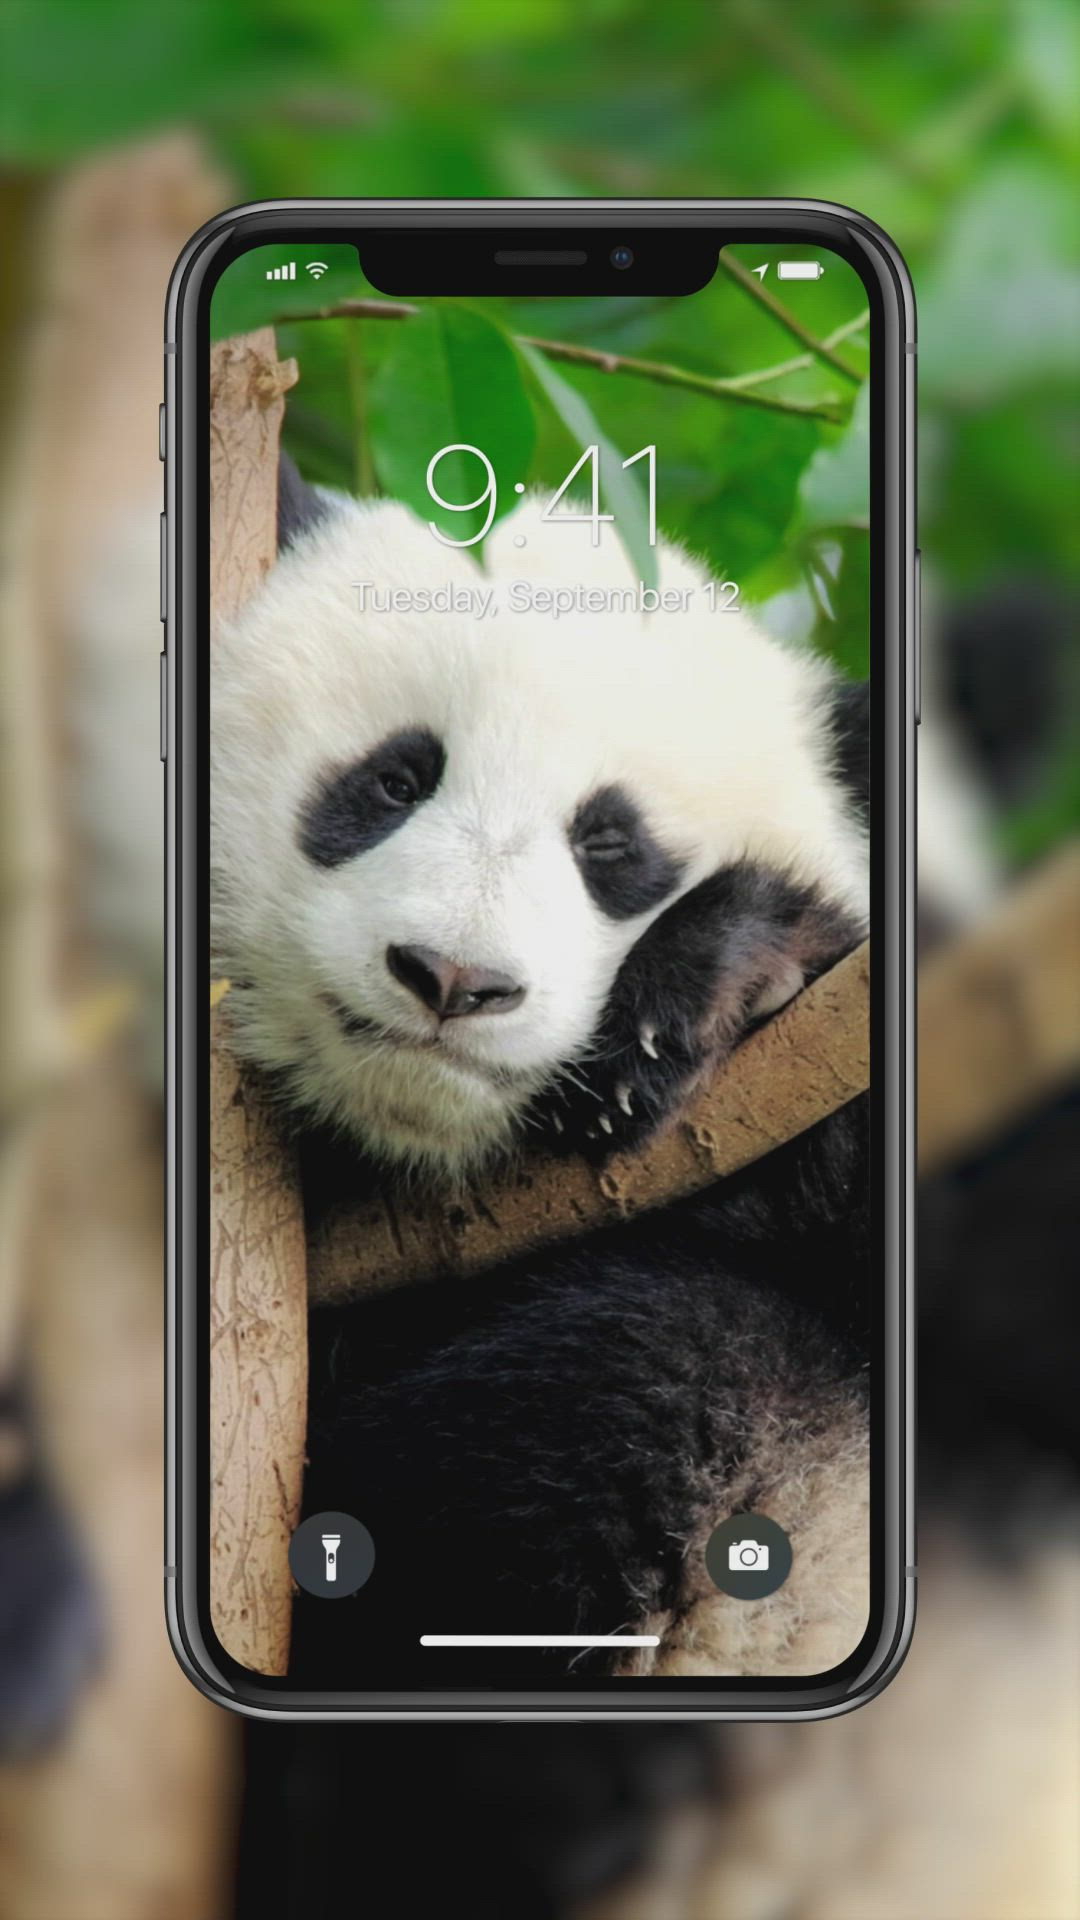 Amazing Live Wallpapers Liven Up Your Screen Now Video Live Wallpapers Apple Wallpaper Live Wallpaper Iphone